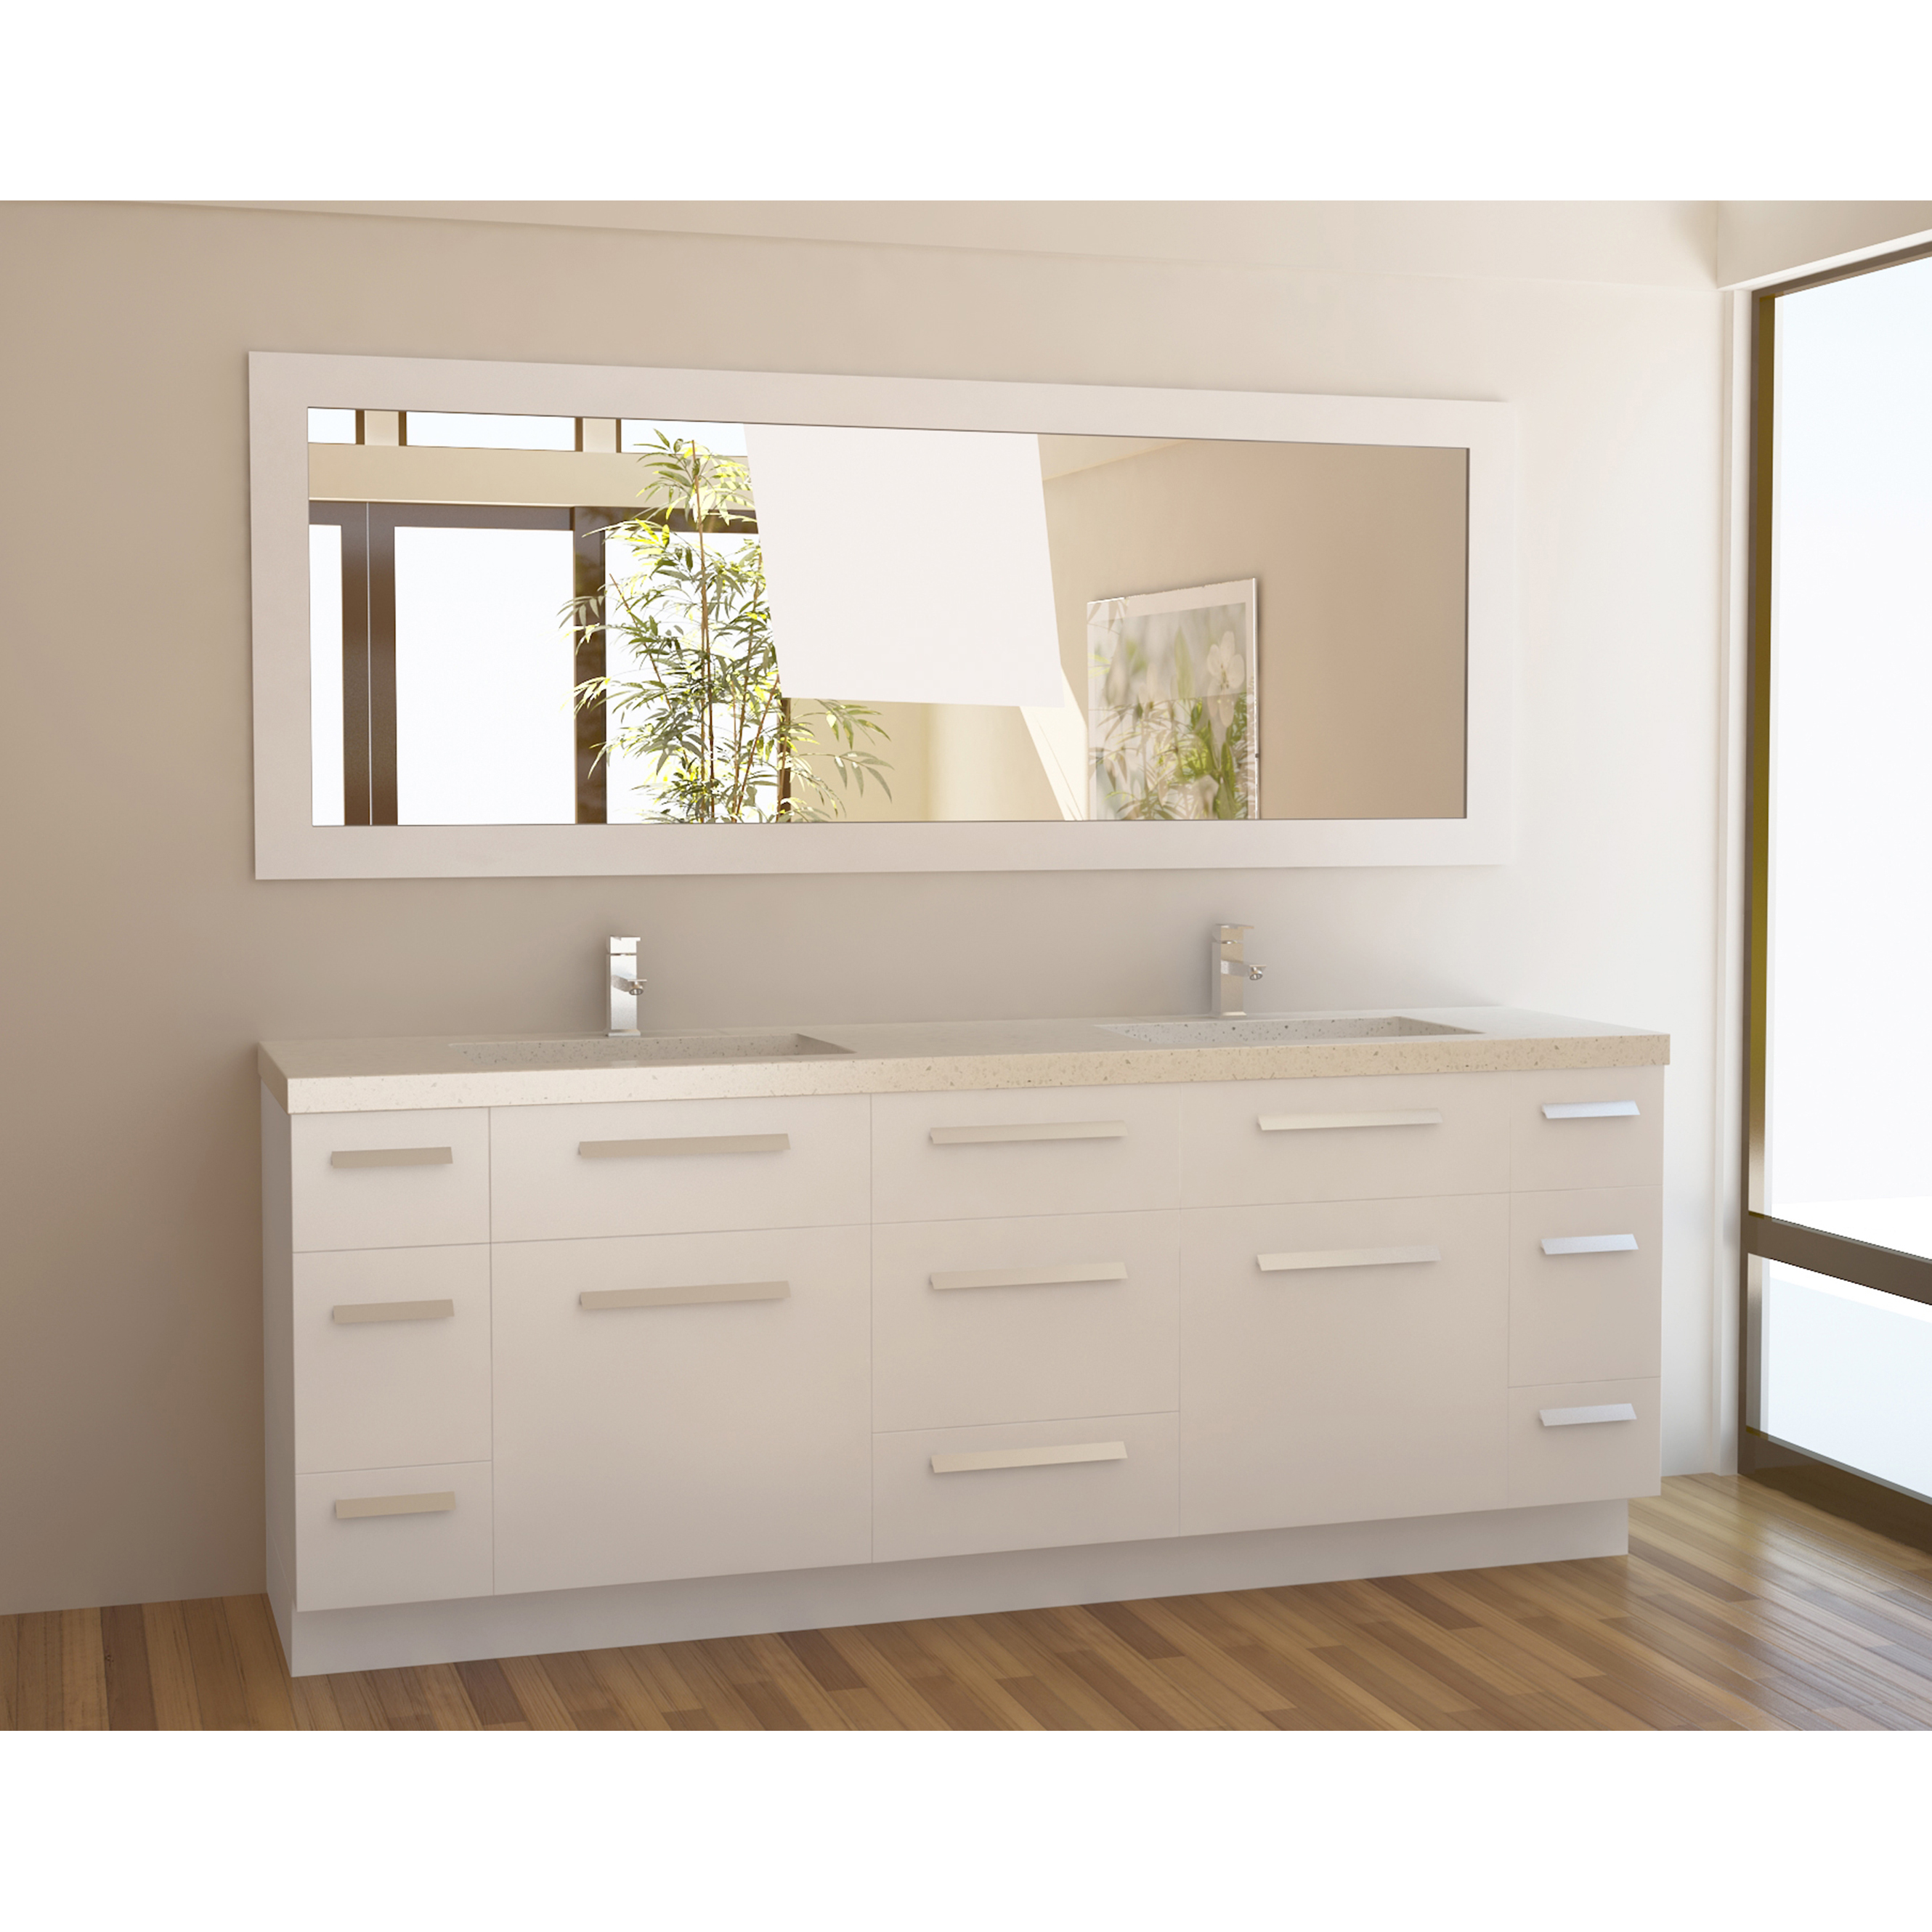 a contemporary 48 inches vanity for bathroom in white color double sinks and double stainless steel faucets a decorative mirror with white wood frame and in square shape